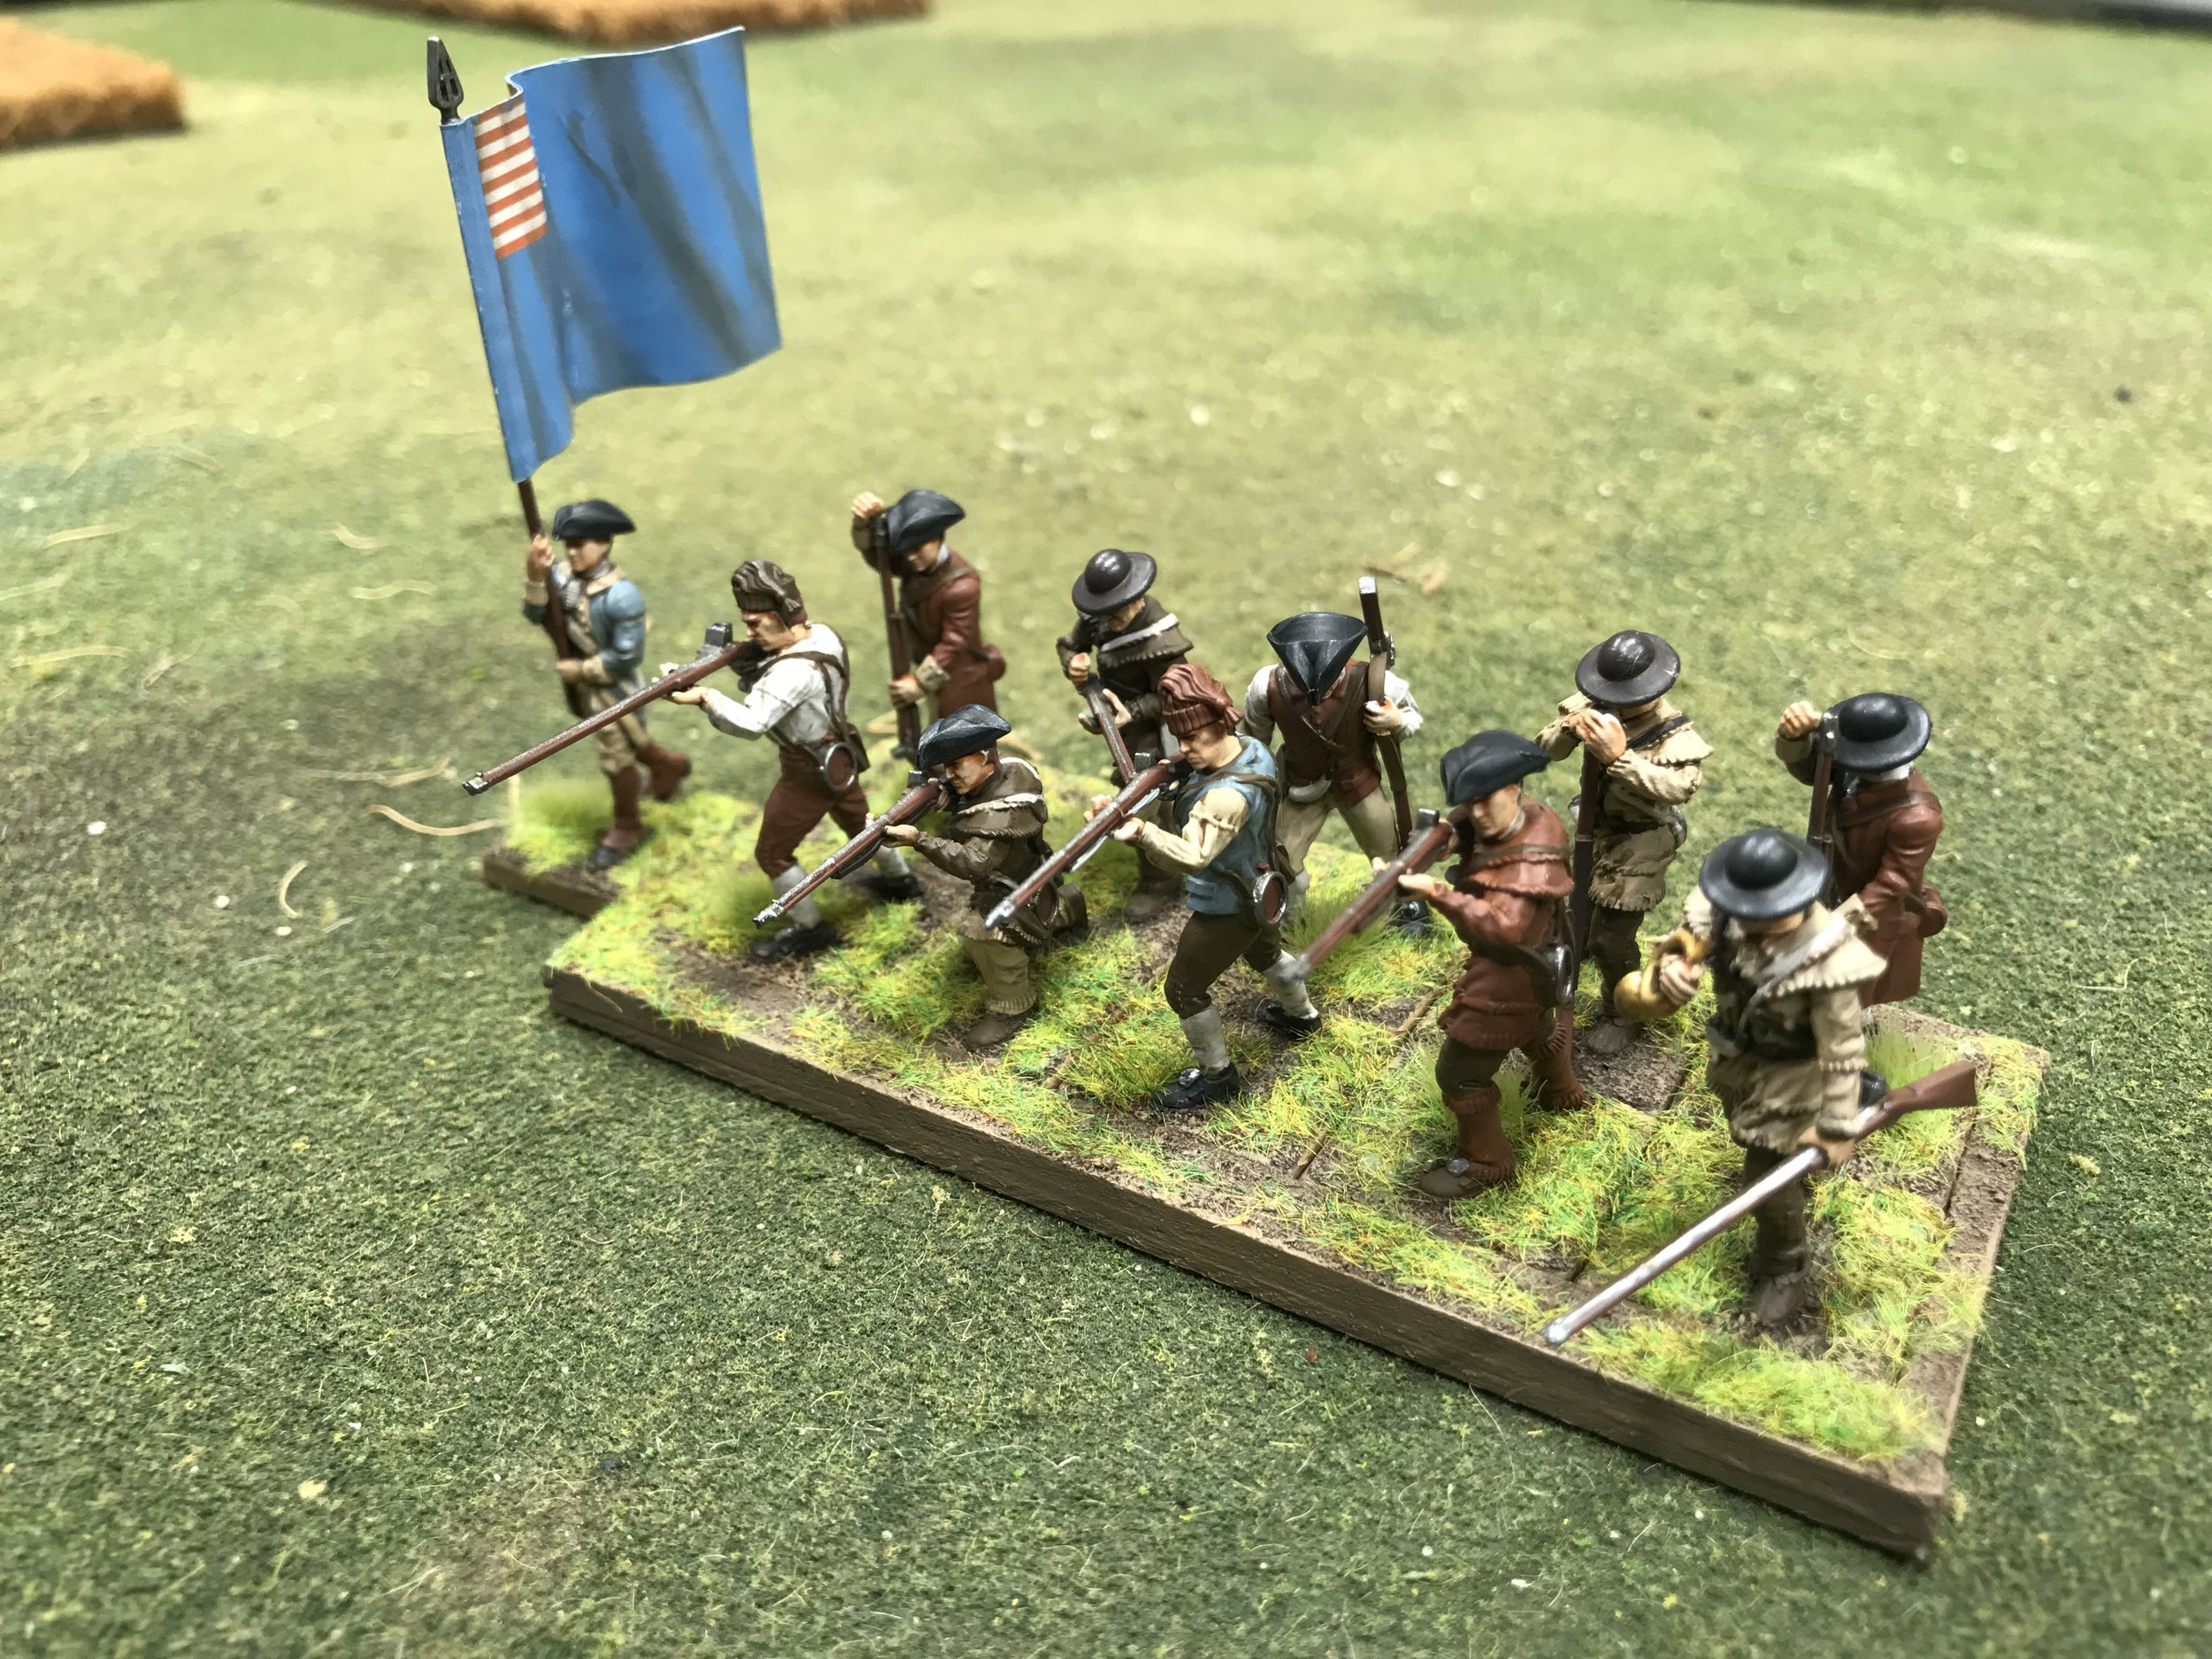 The (allegedly) last of the Colonial Militia from Travis